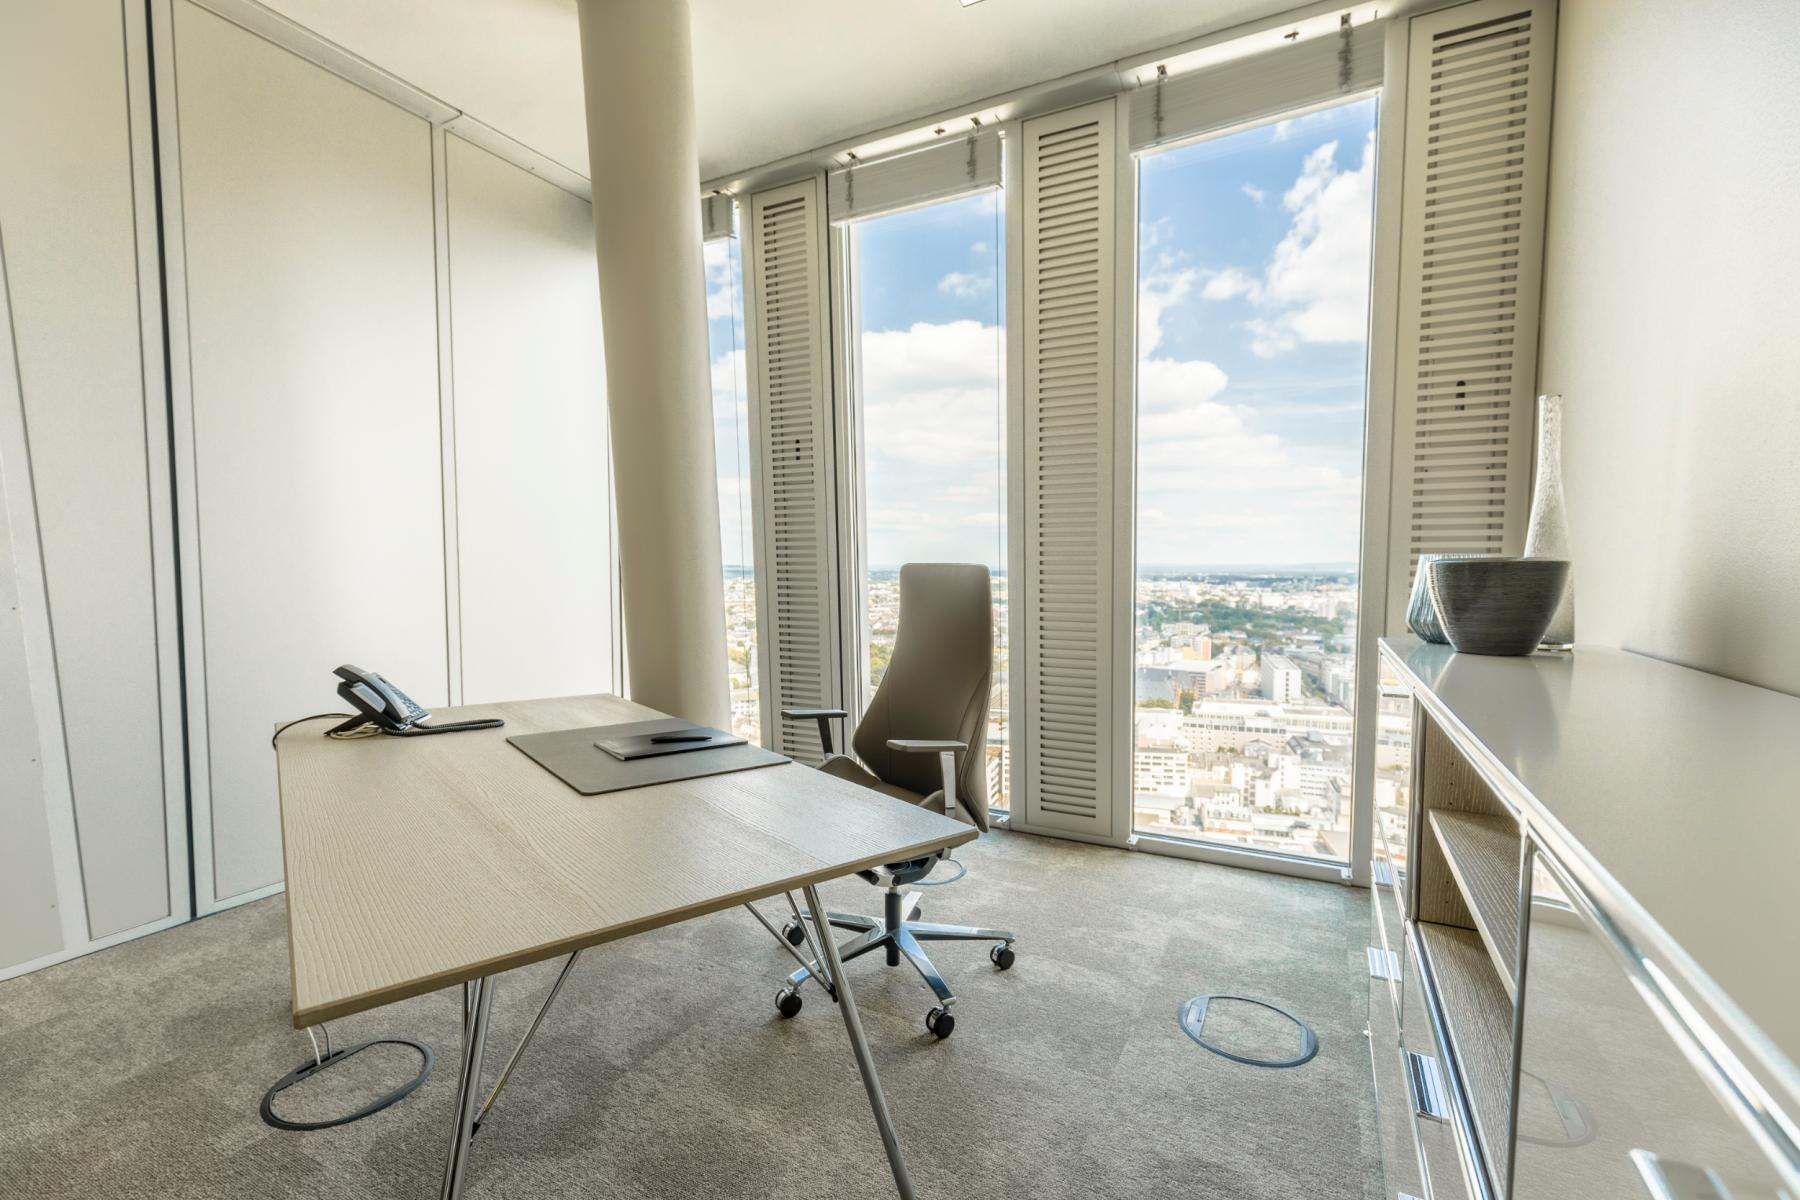 Rent an office with a breathtaking view in Frankfurt